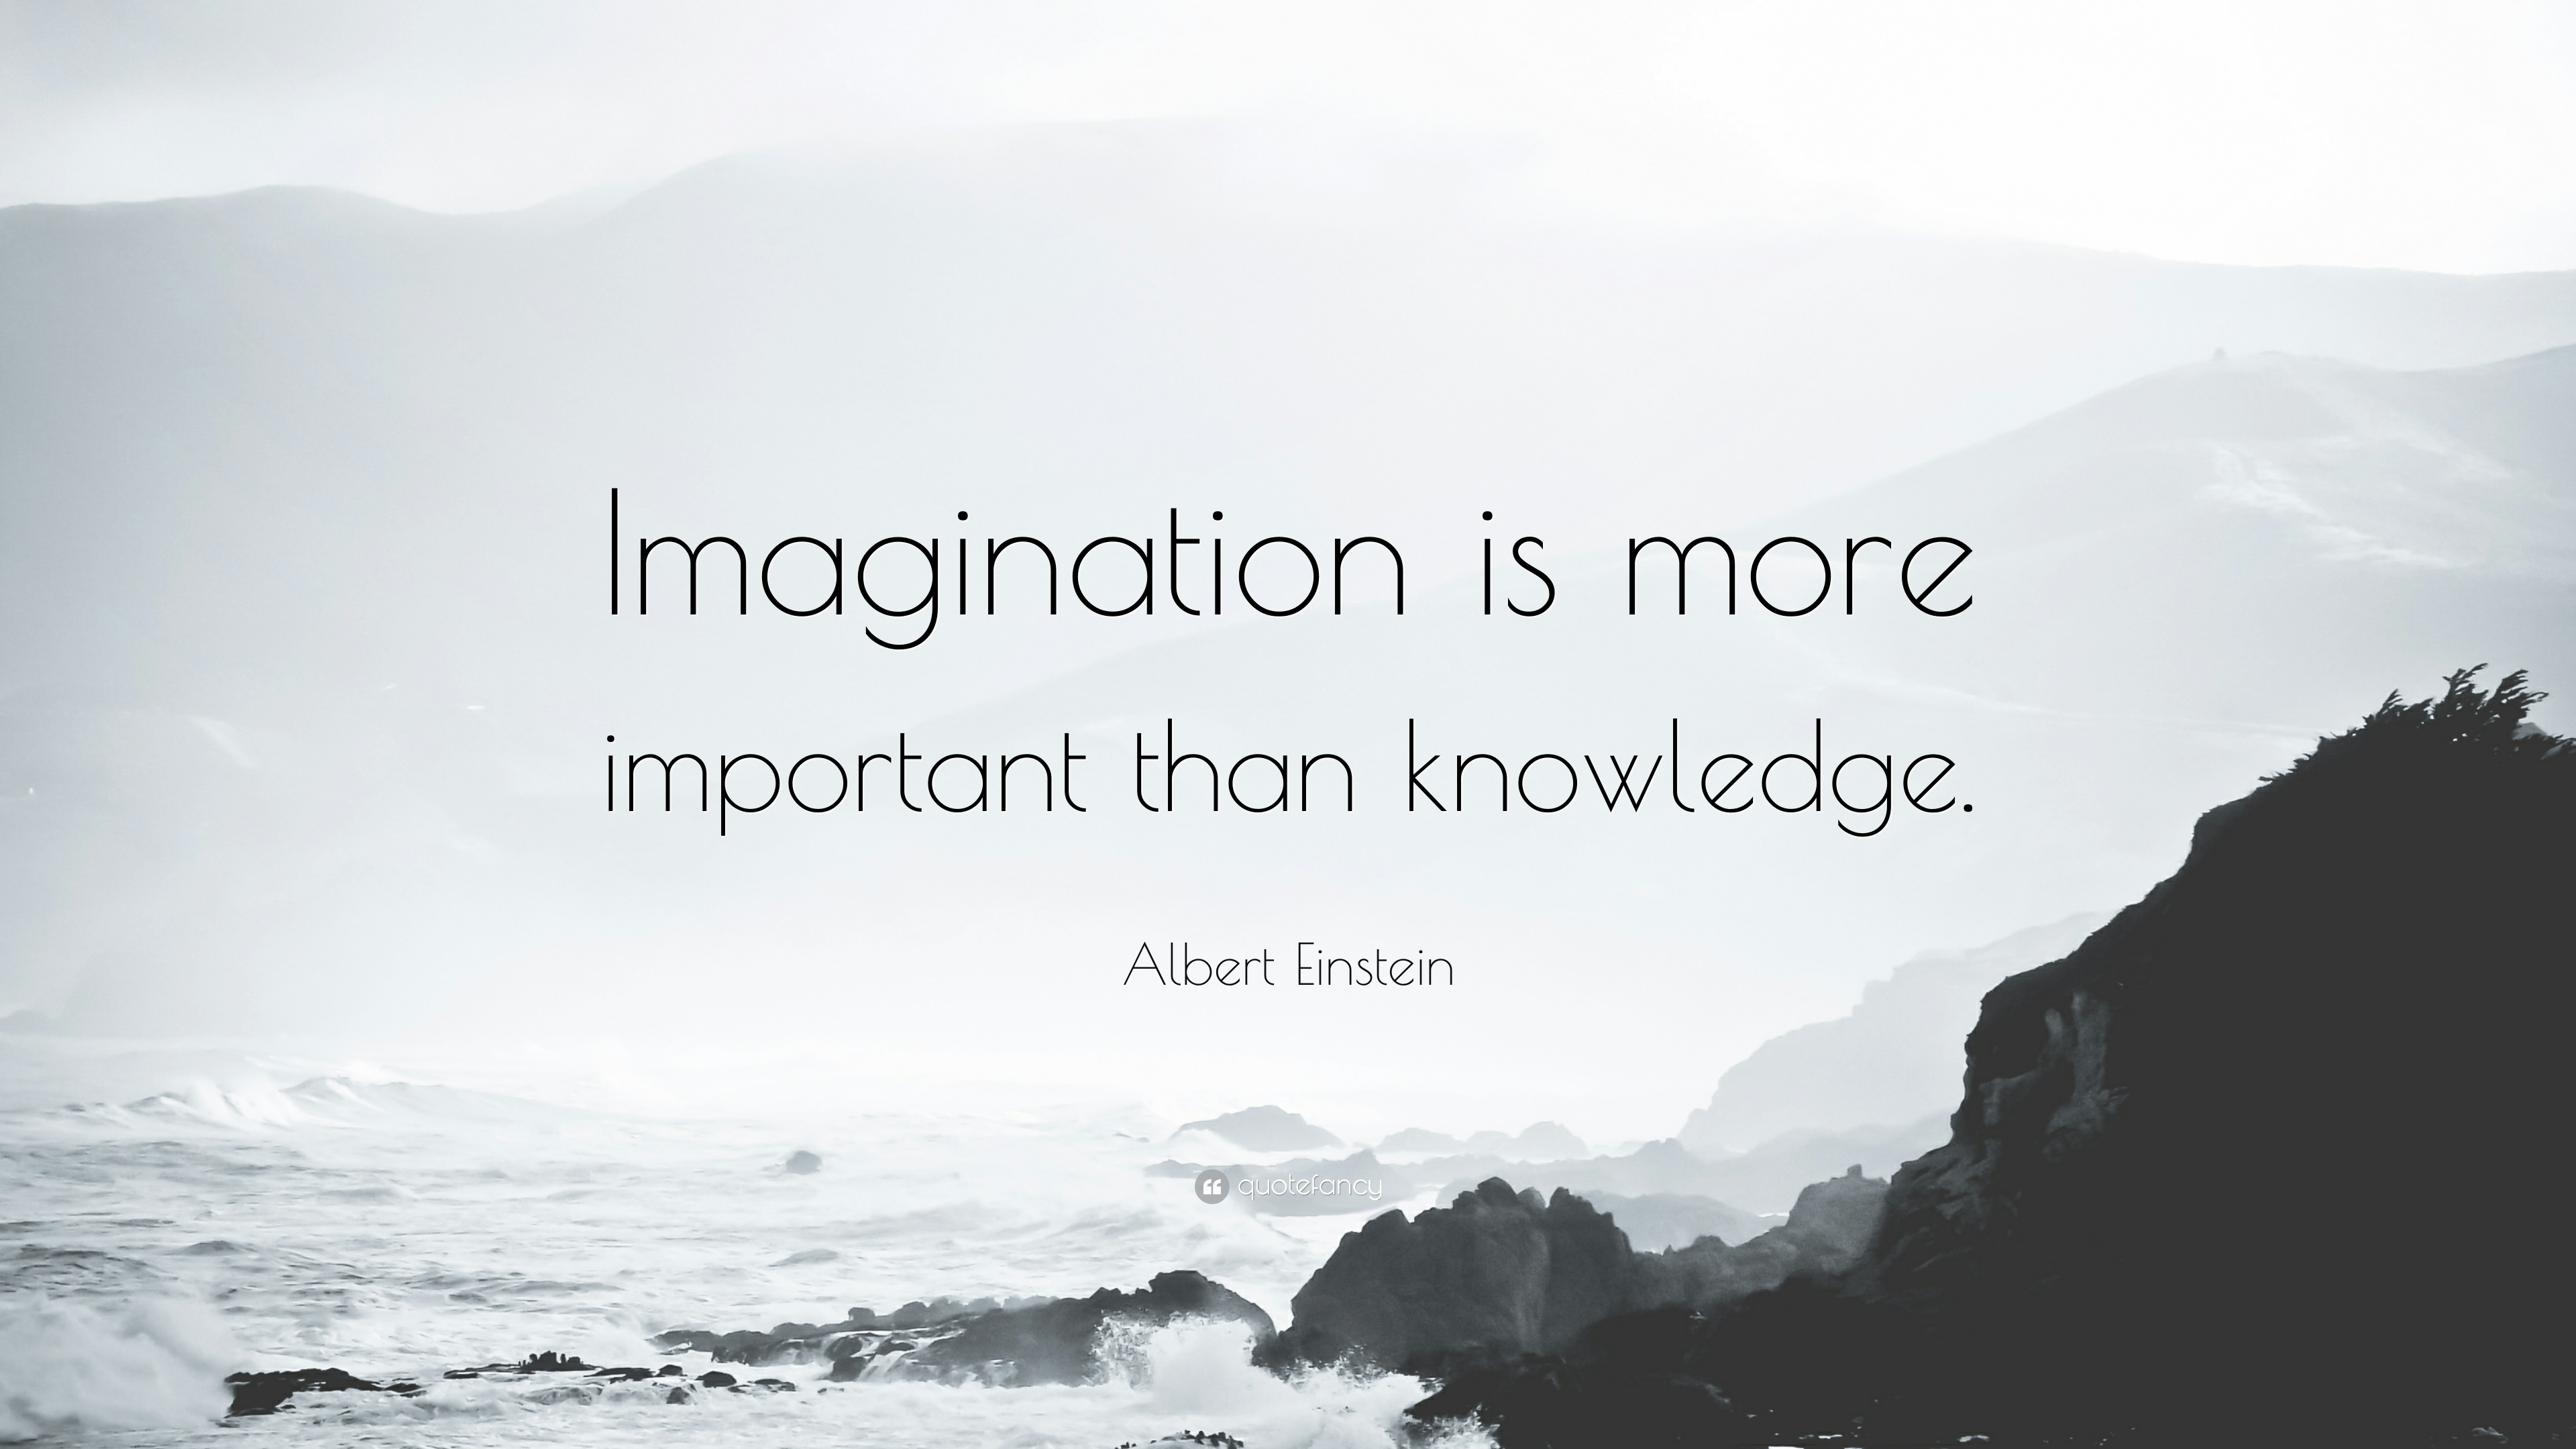 Wasting Time Quotes Wallpaper Albert Einstein Quote Imagination Is More Important Than